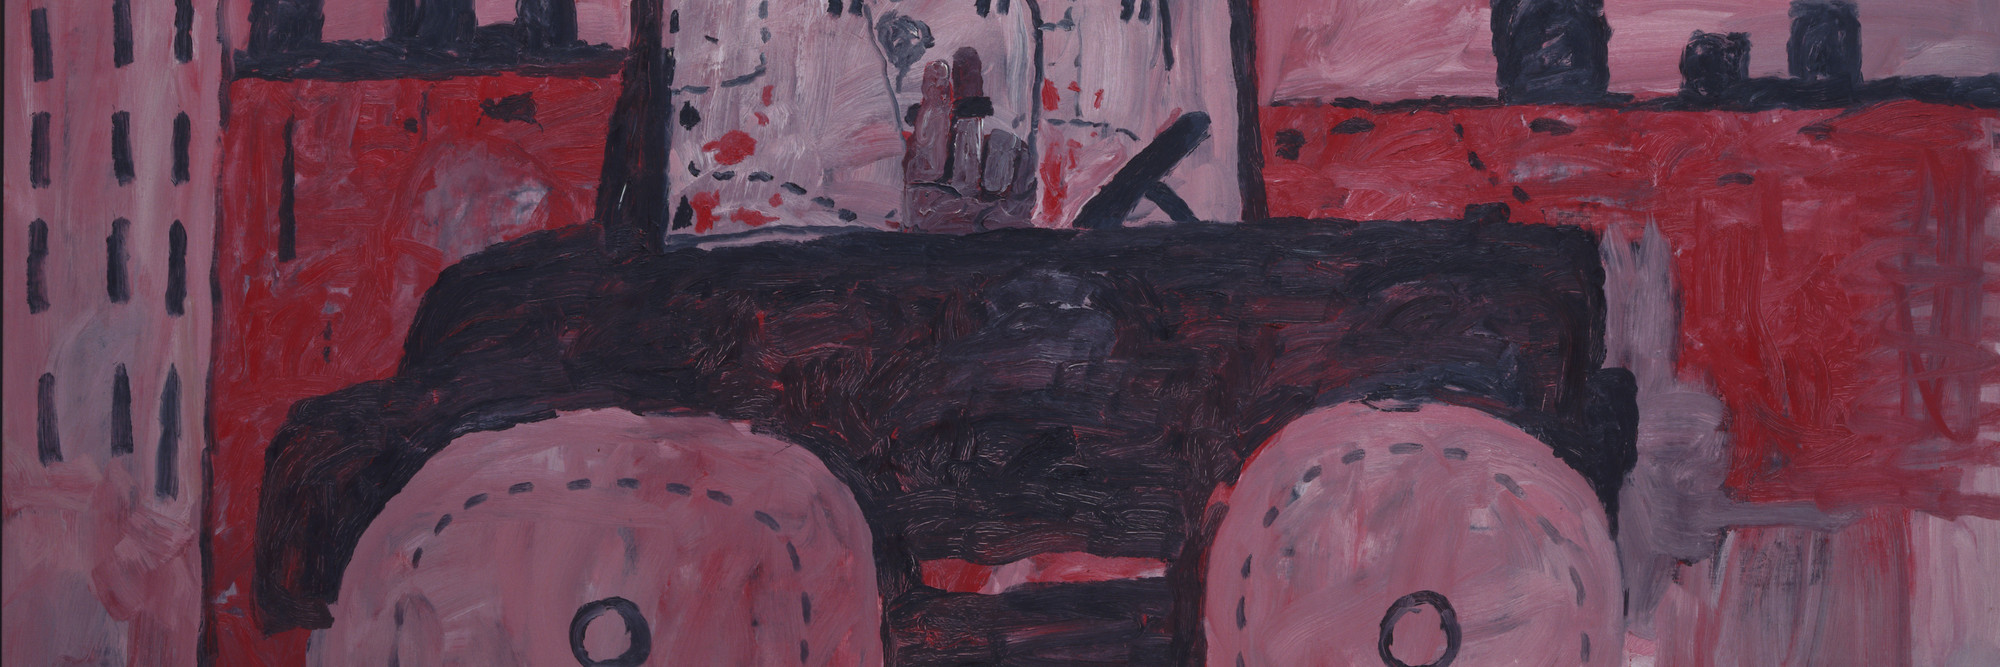 Philip Guston. City Limits. 1969. Oil on canvas, 6′ 5″ × 8′ 7 1/4″ (195.6 × 262.2 cm). Gift of Musa Guston. © 2016 The Estate of Philip Guston